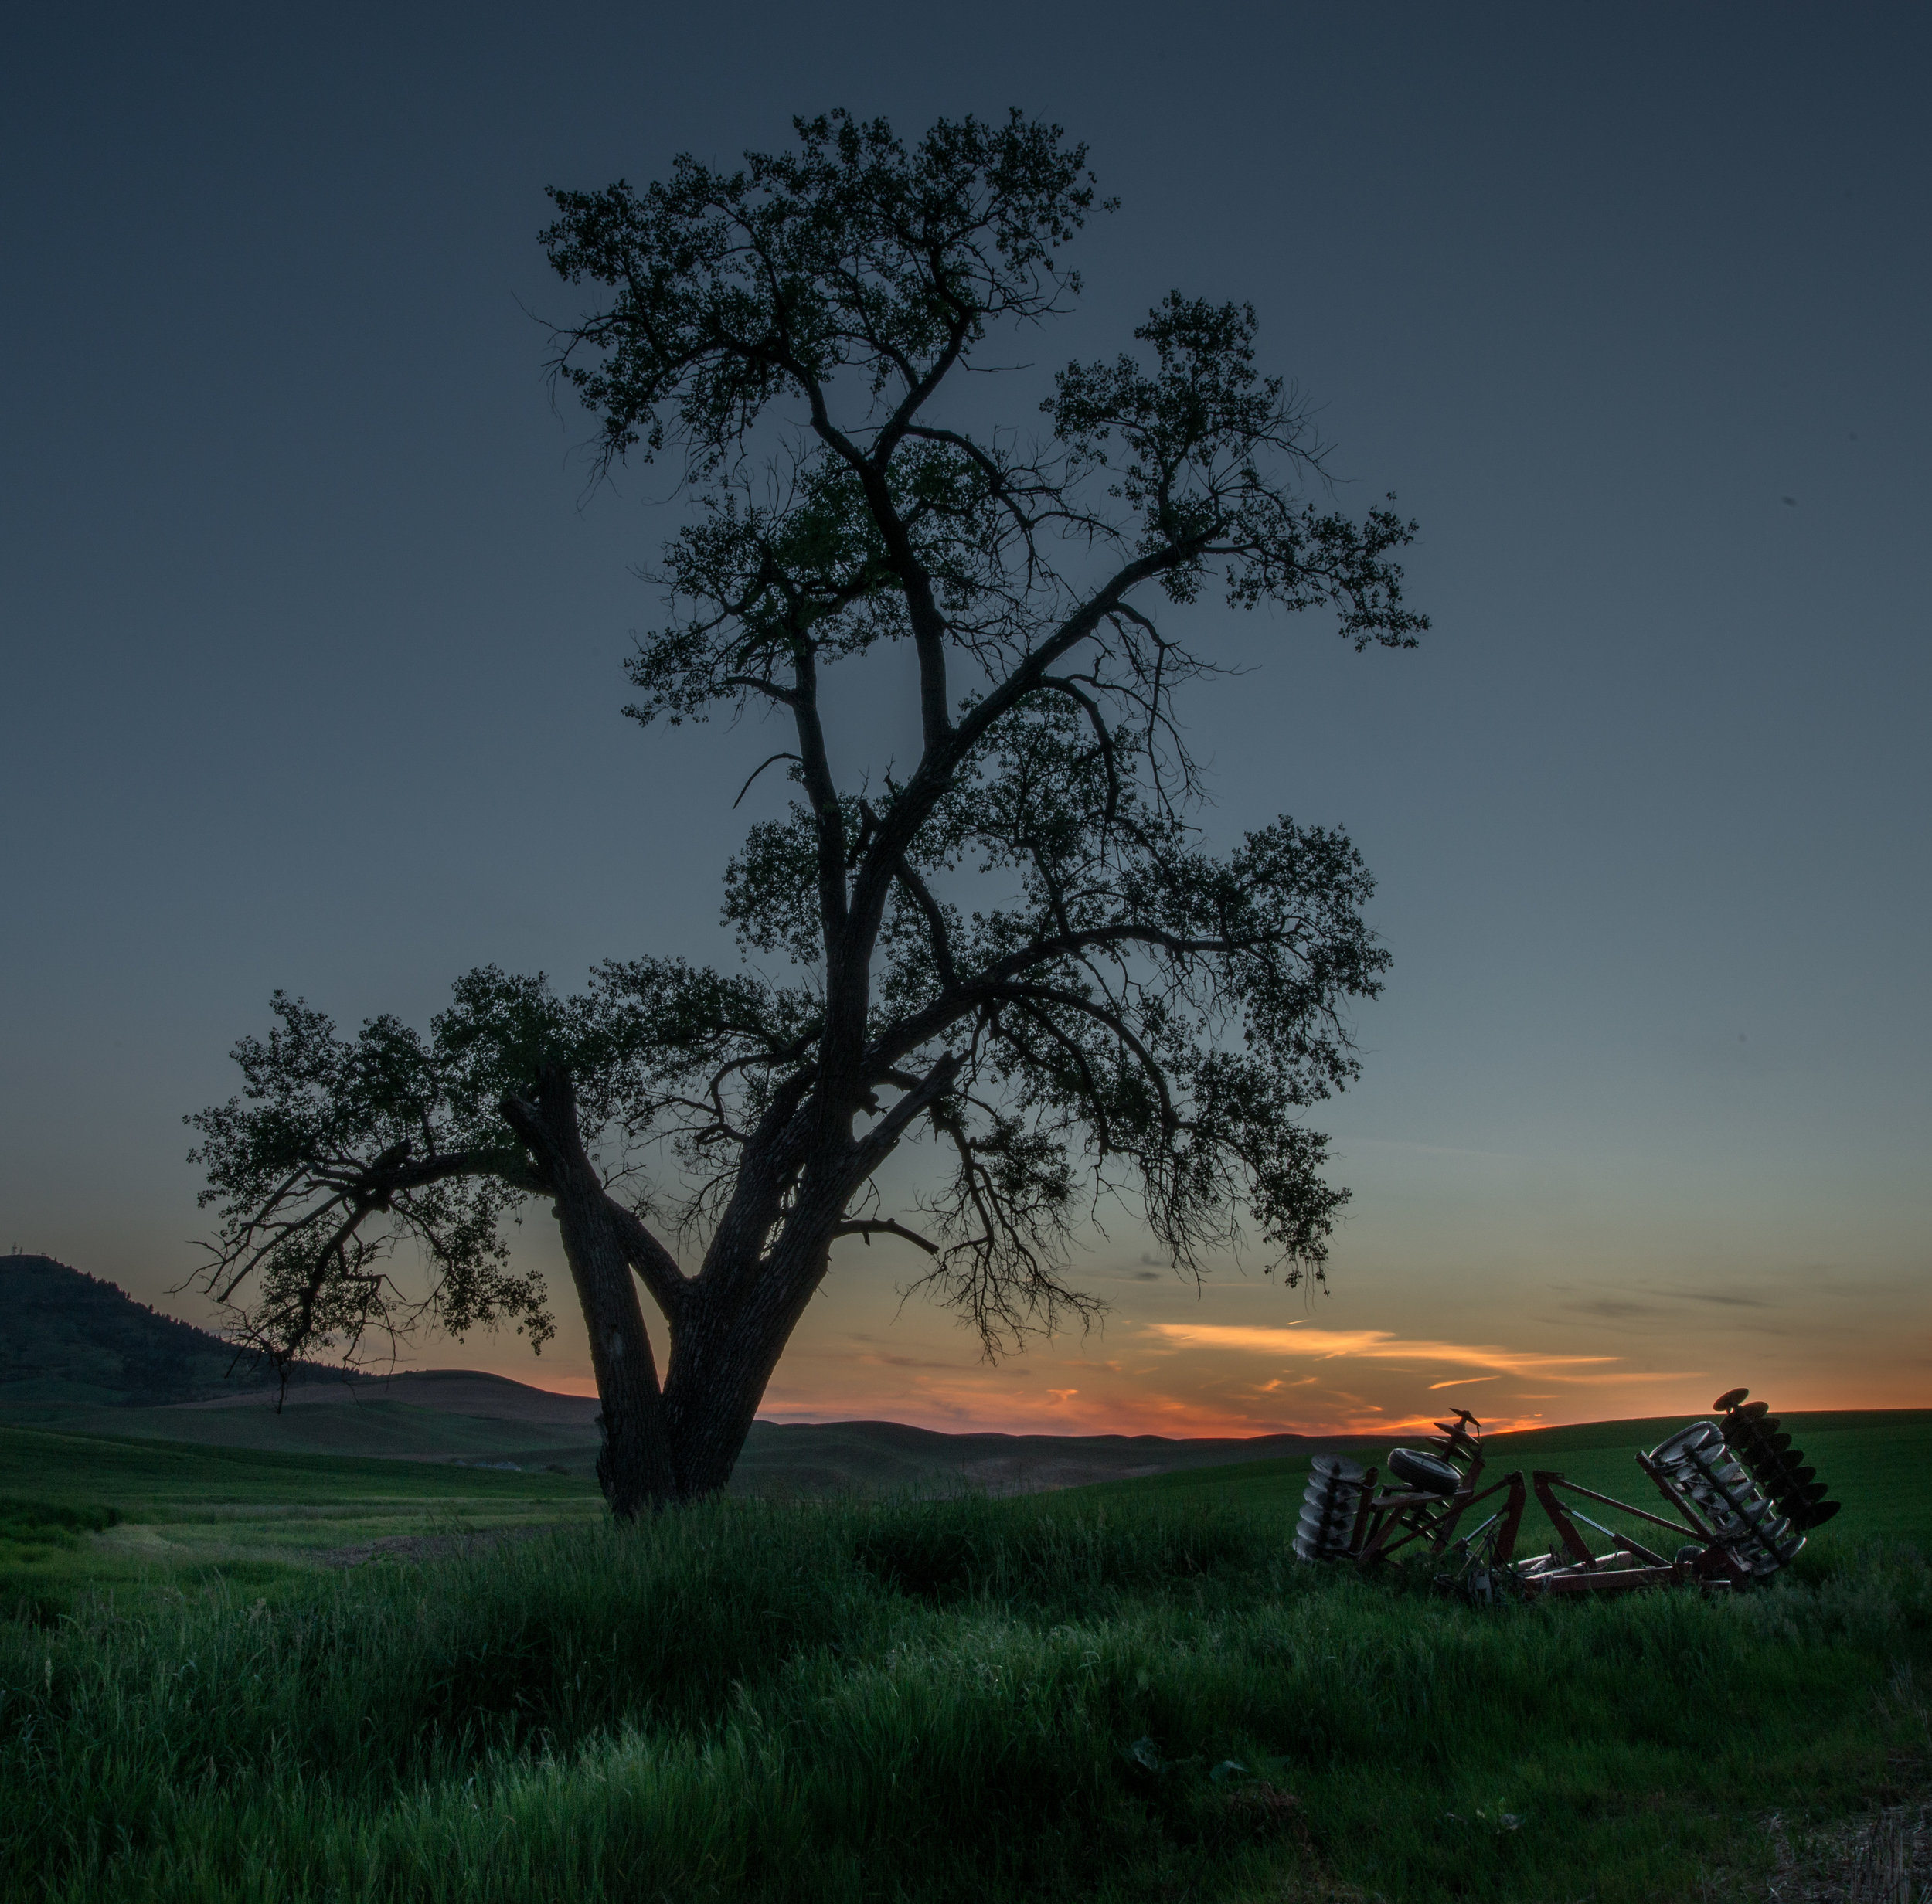 Featured Photo 52: Lone Oak and Tiller at Sunset: Steptoe, WHI (WA)  EQ: D800, 14-24mm f/2/8, Tripod  Taken: 6-6-2017 at 19:50   Settings: 22mm, 1/10s, f/20.0, ISO400, -1EV  Conditions: clear